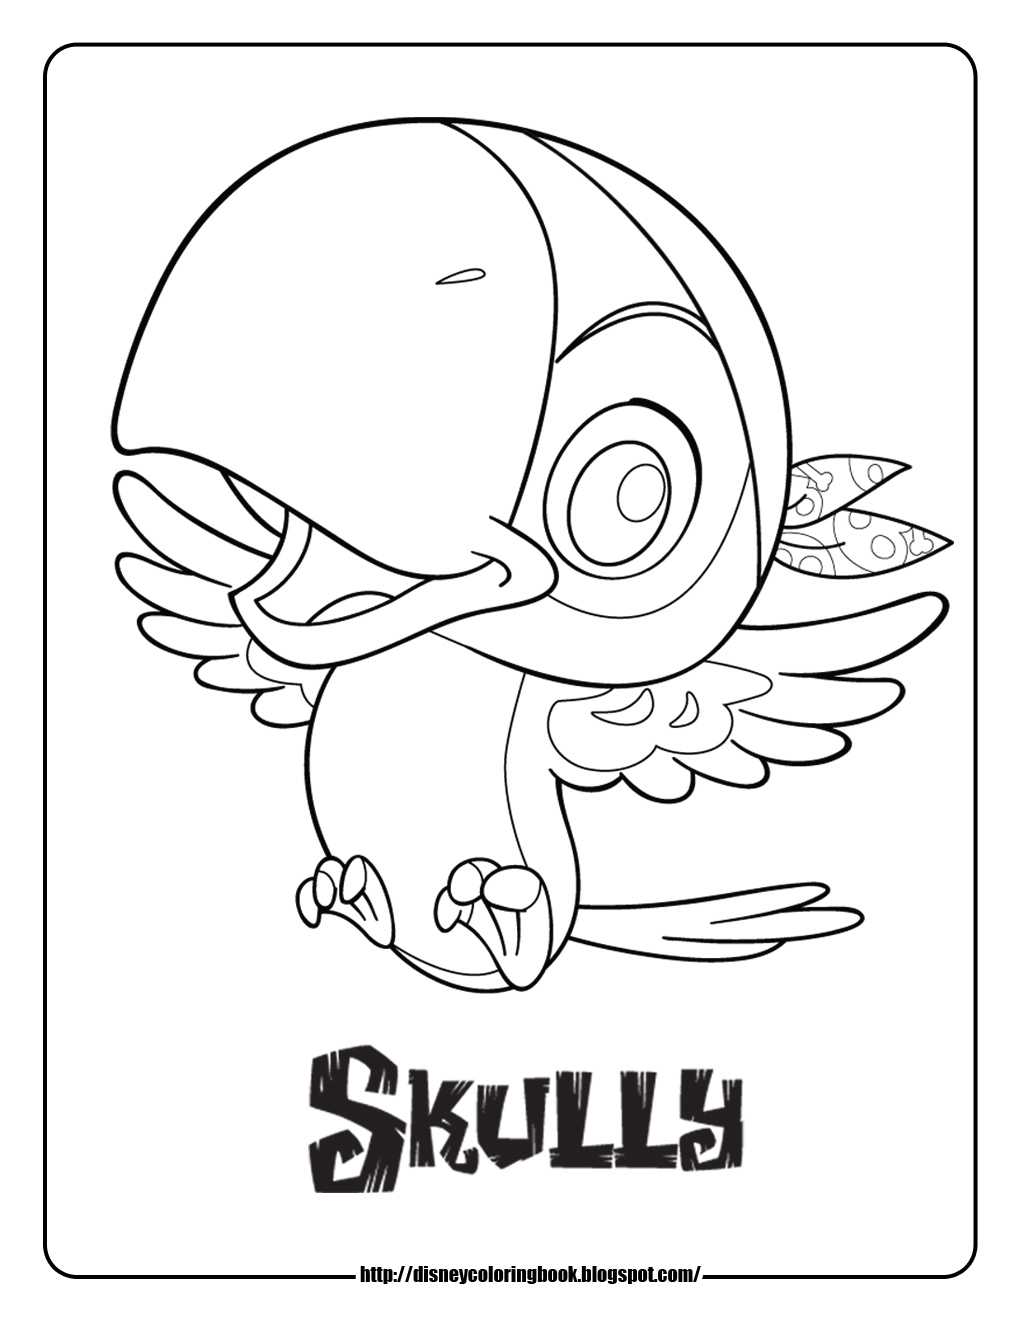 Jake And The Neverland Pirates Skully Coloring Pages